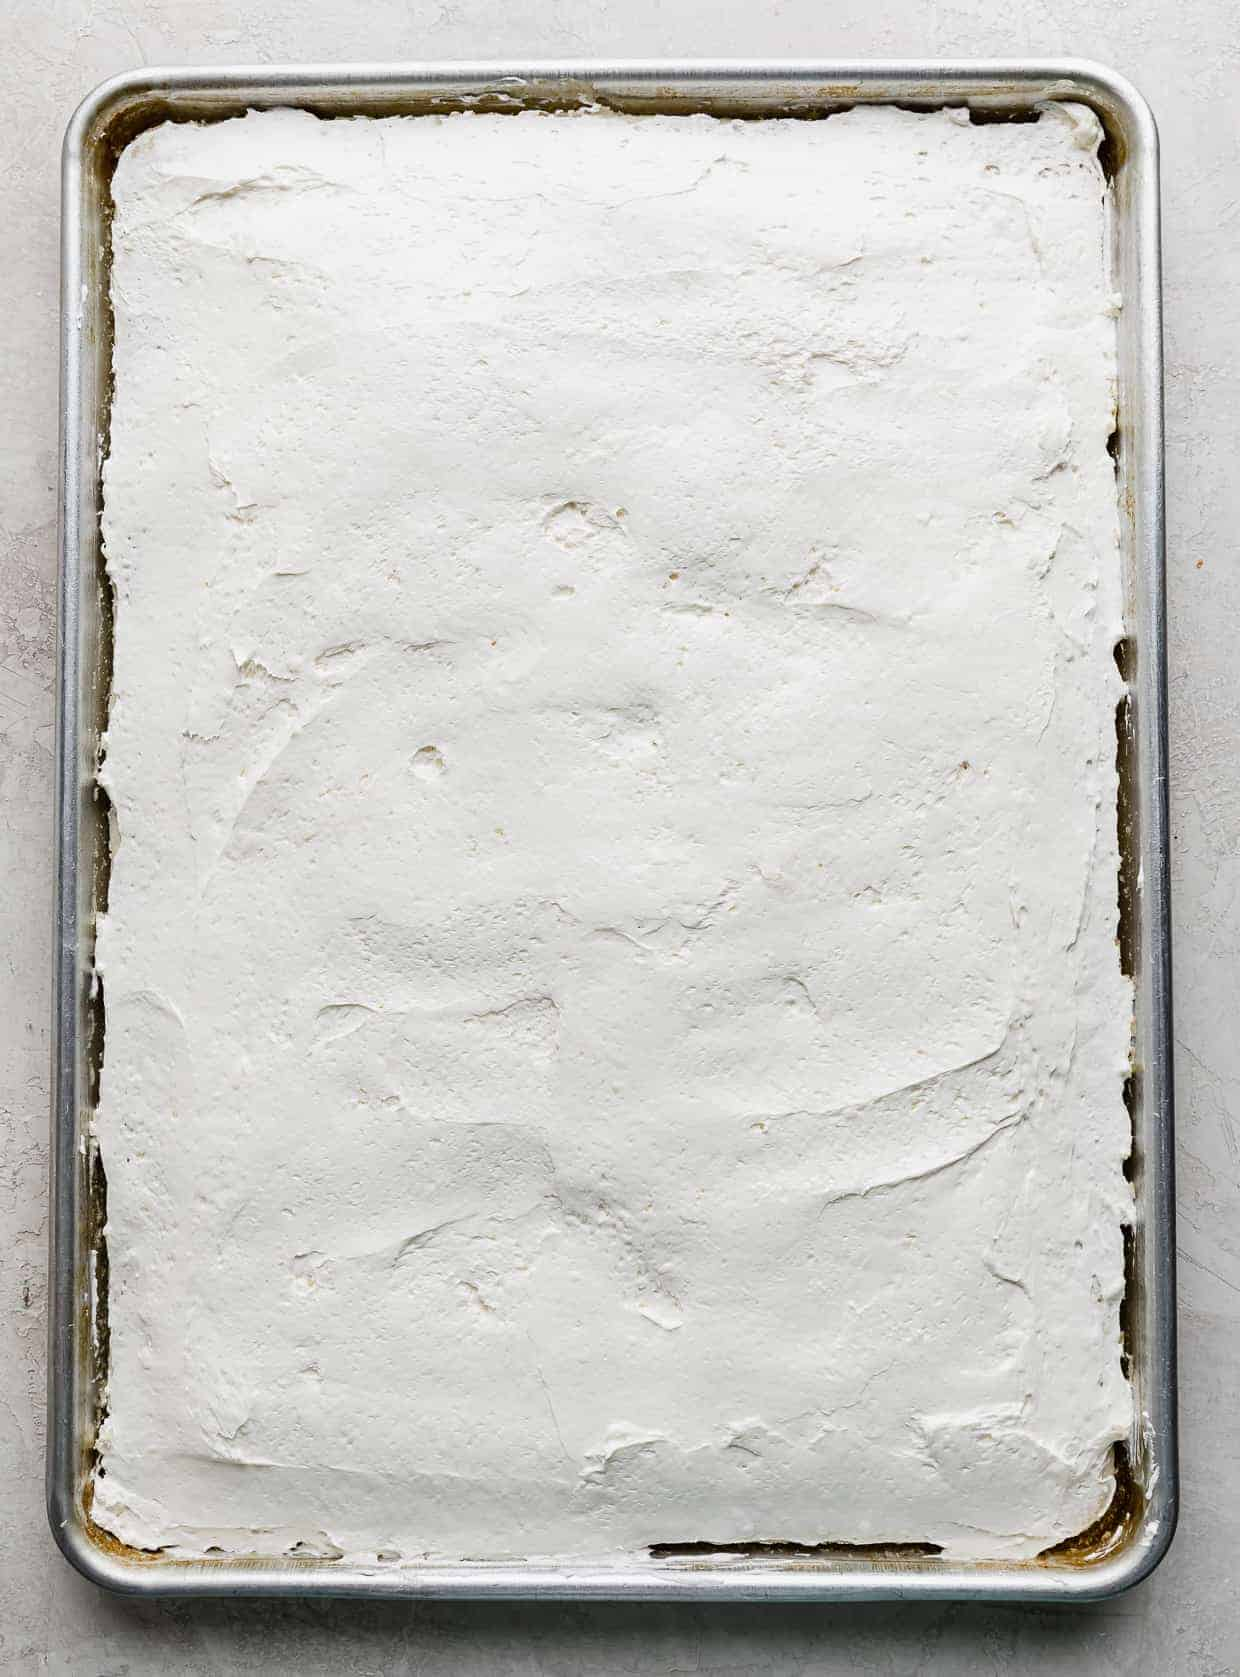 A white sheet cake topped with a white cream cheese layer.